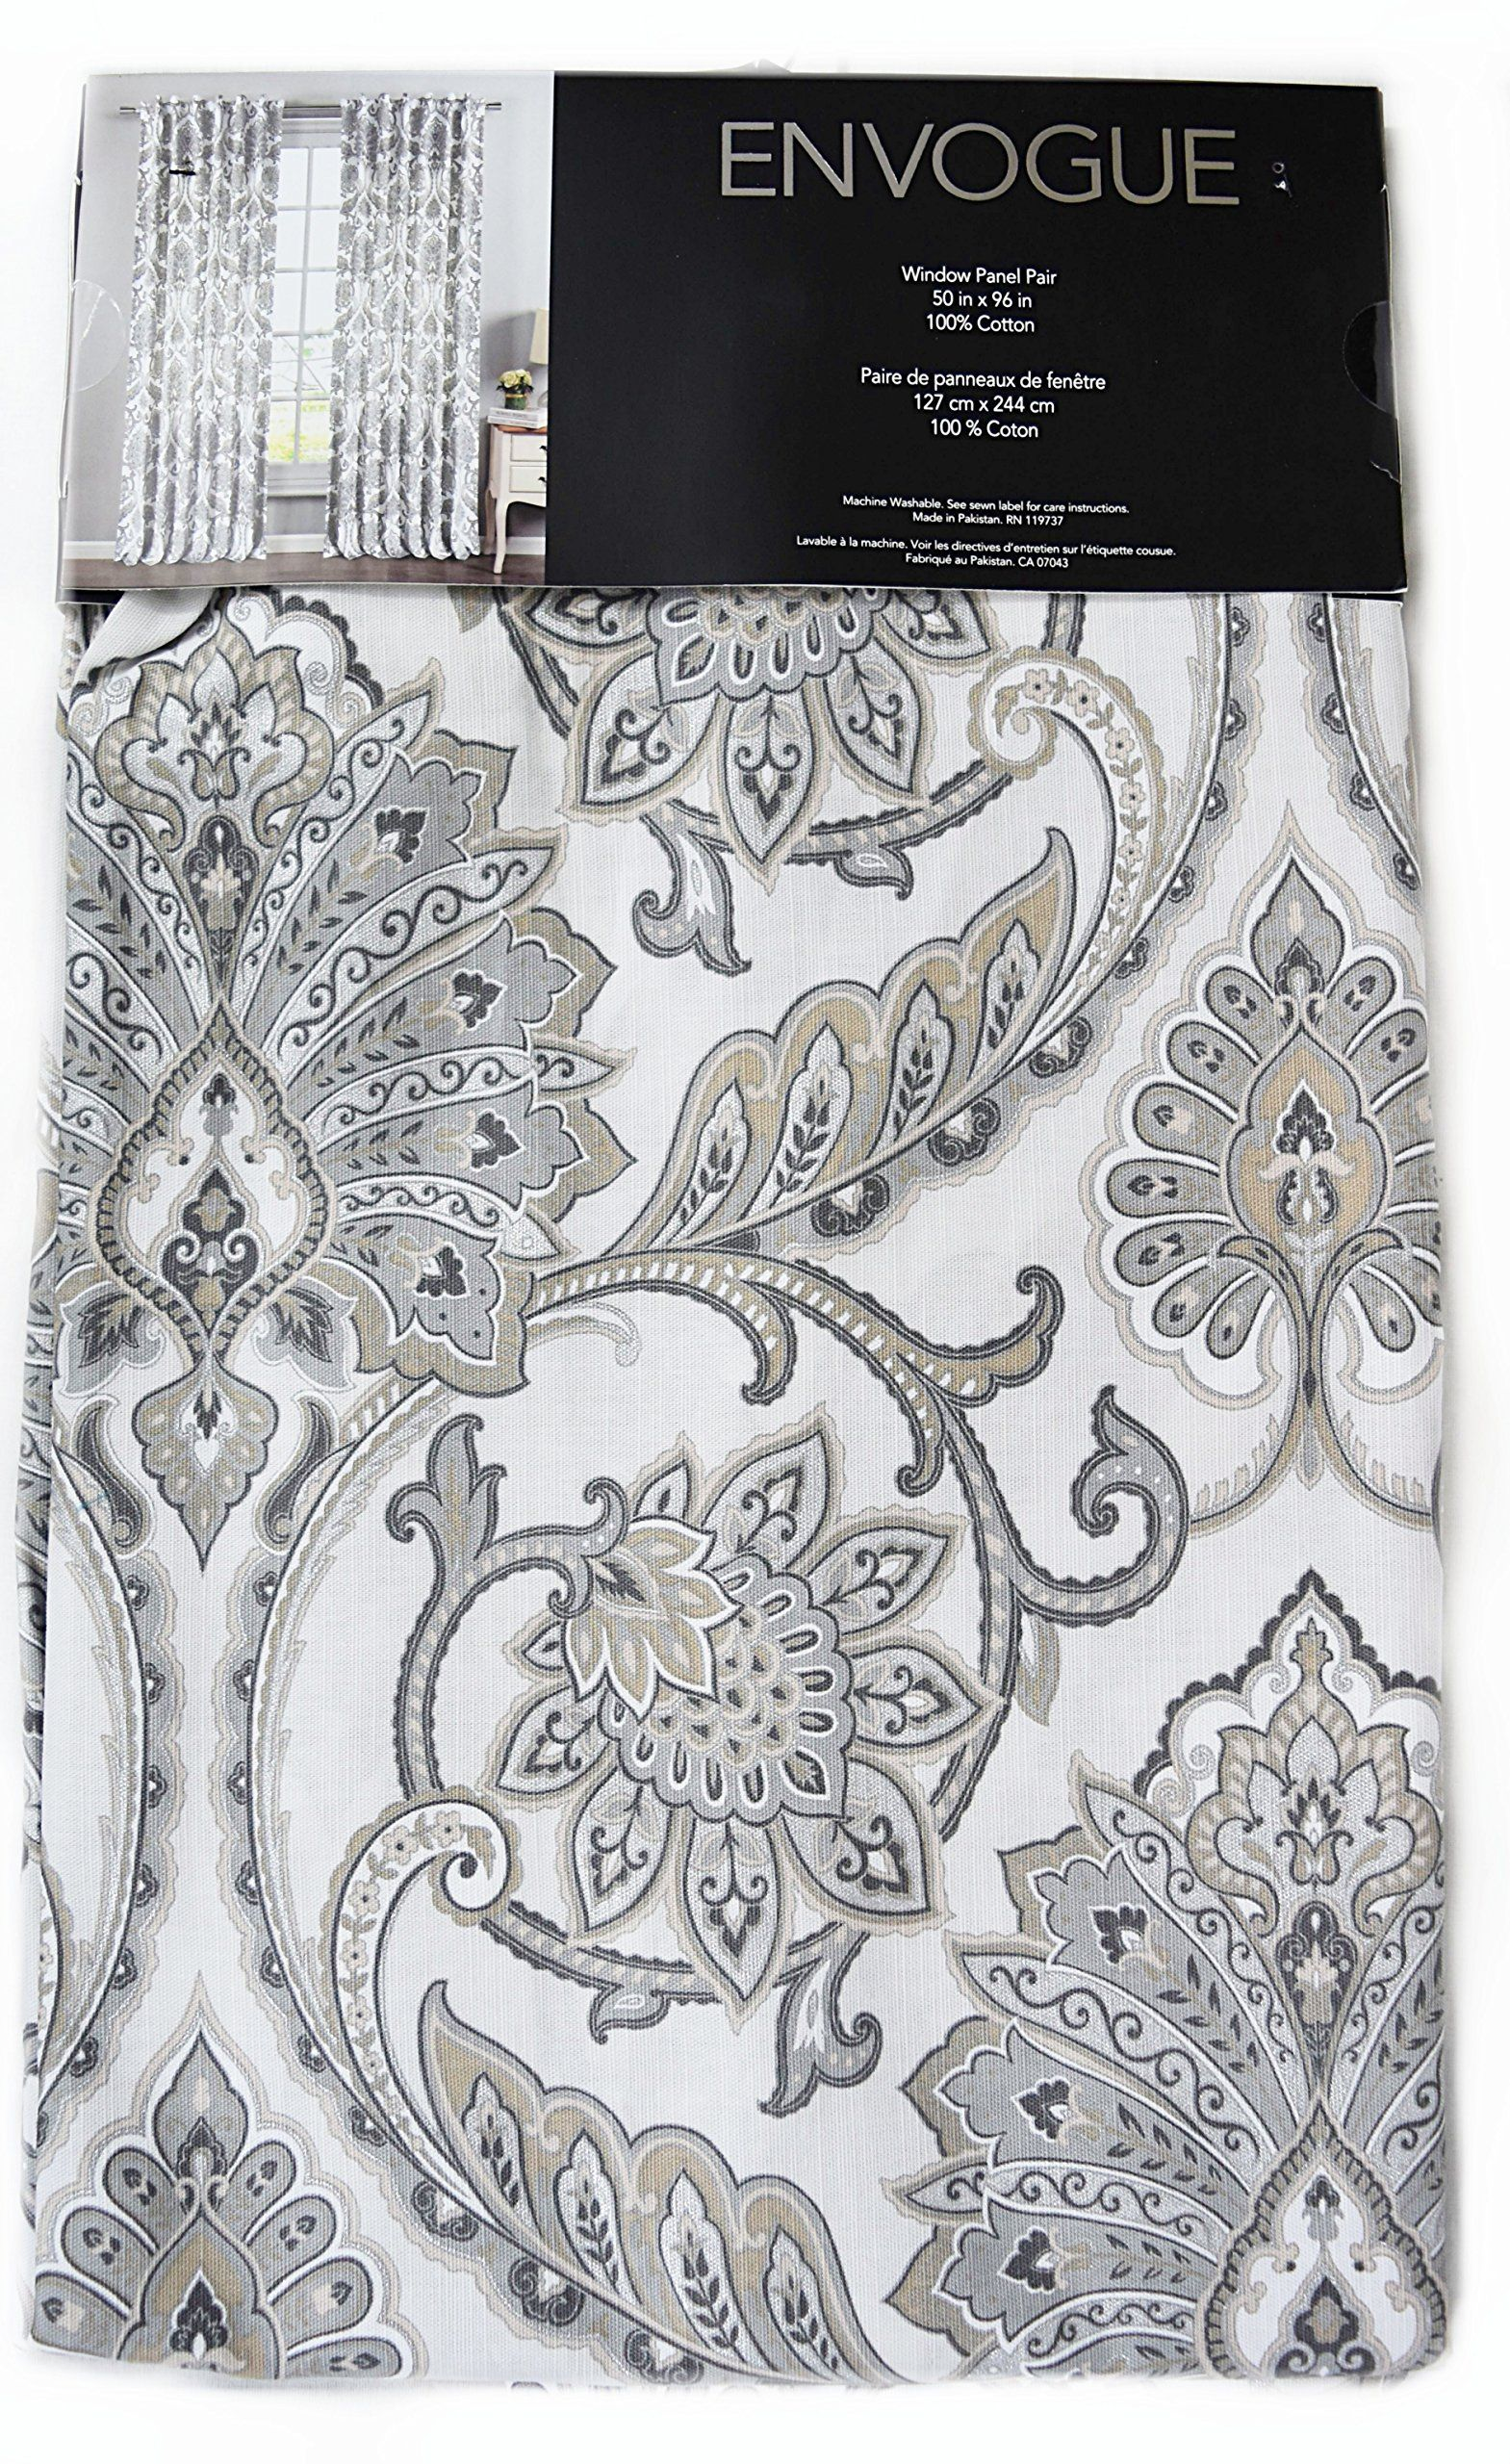 Envogue Taupe Grey Brocade Damask Medallions Window Panels 50 By